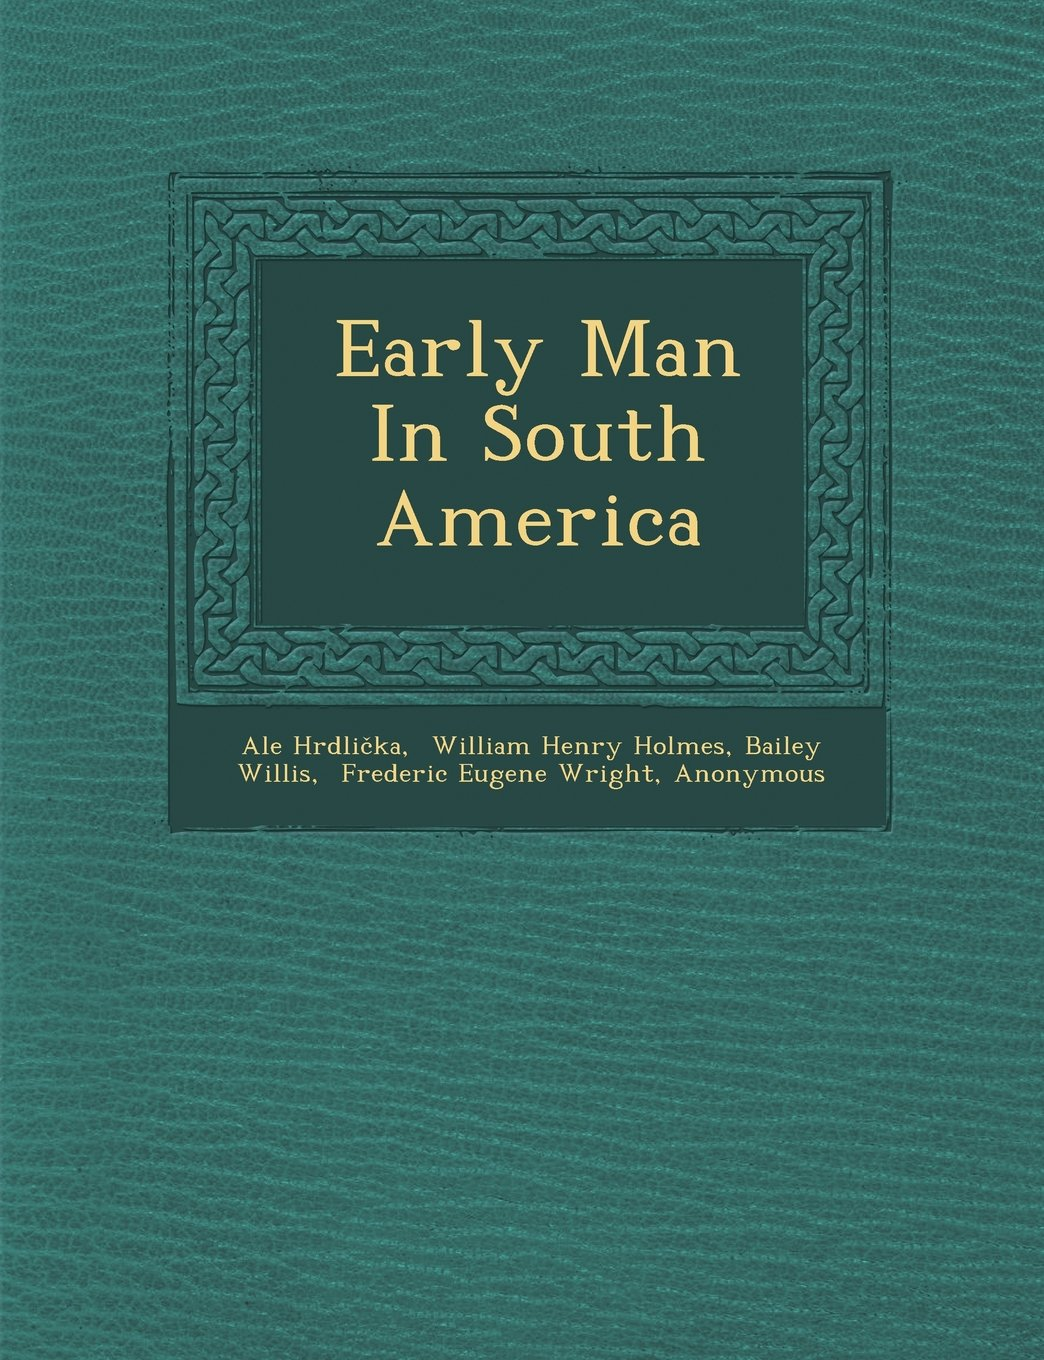 Download Early Man In South America PDF